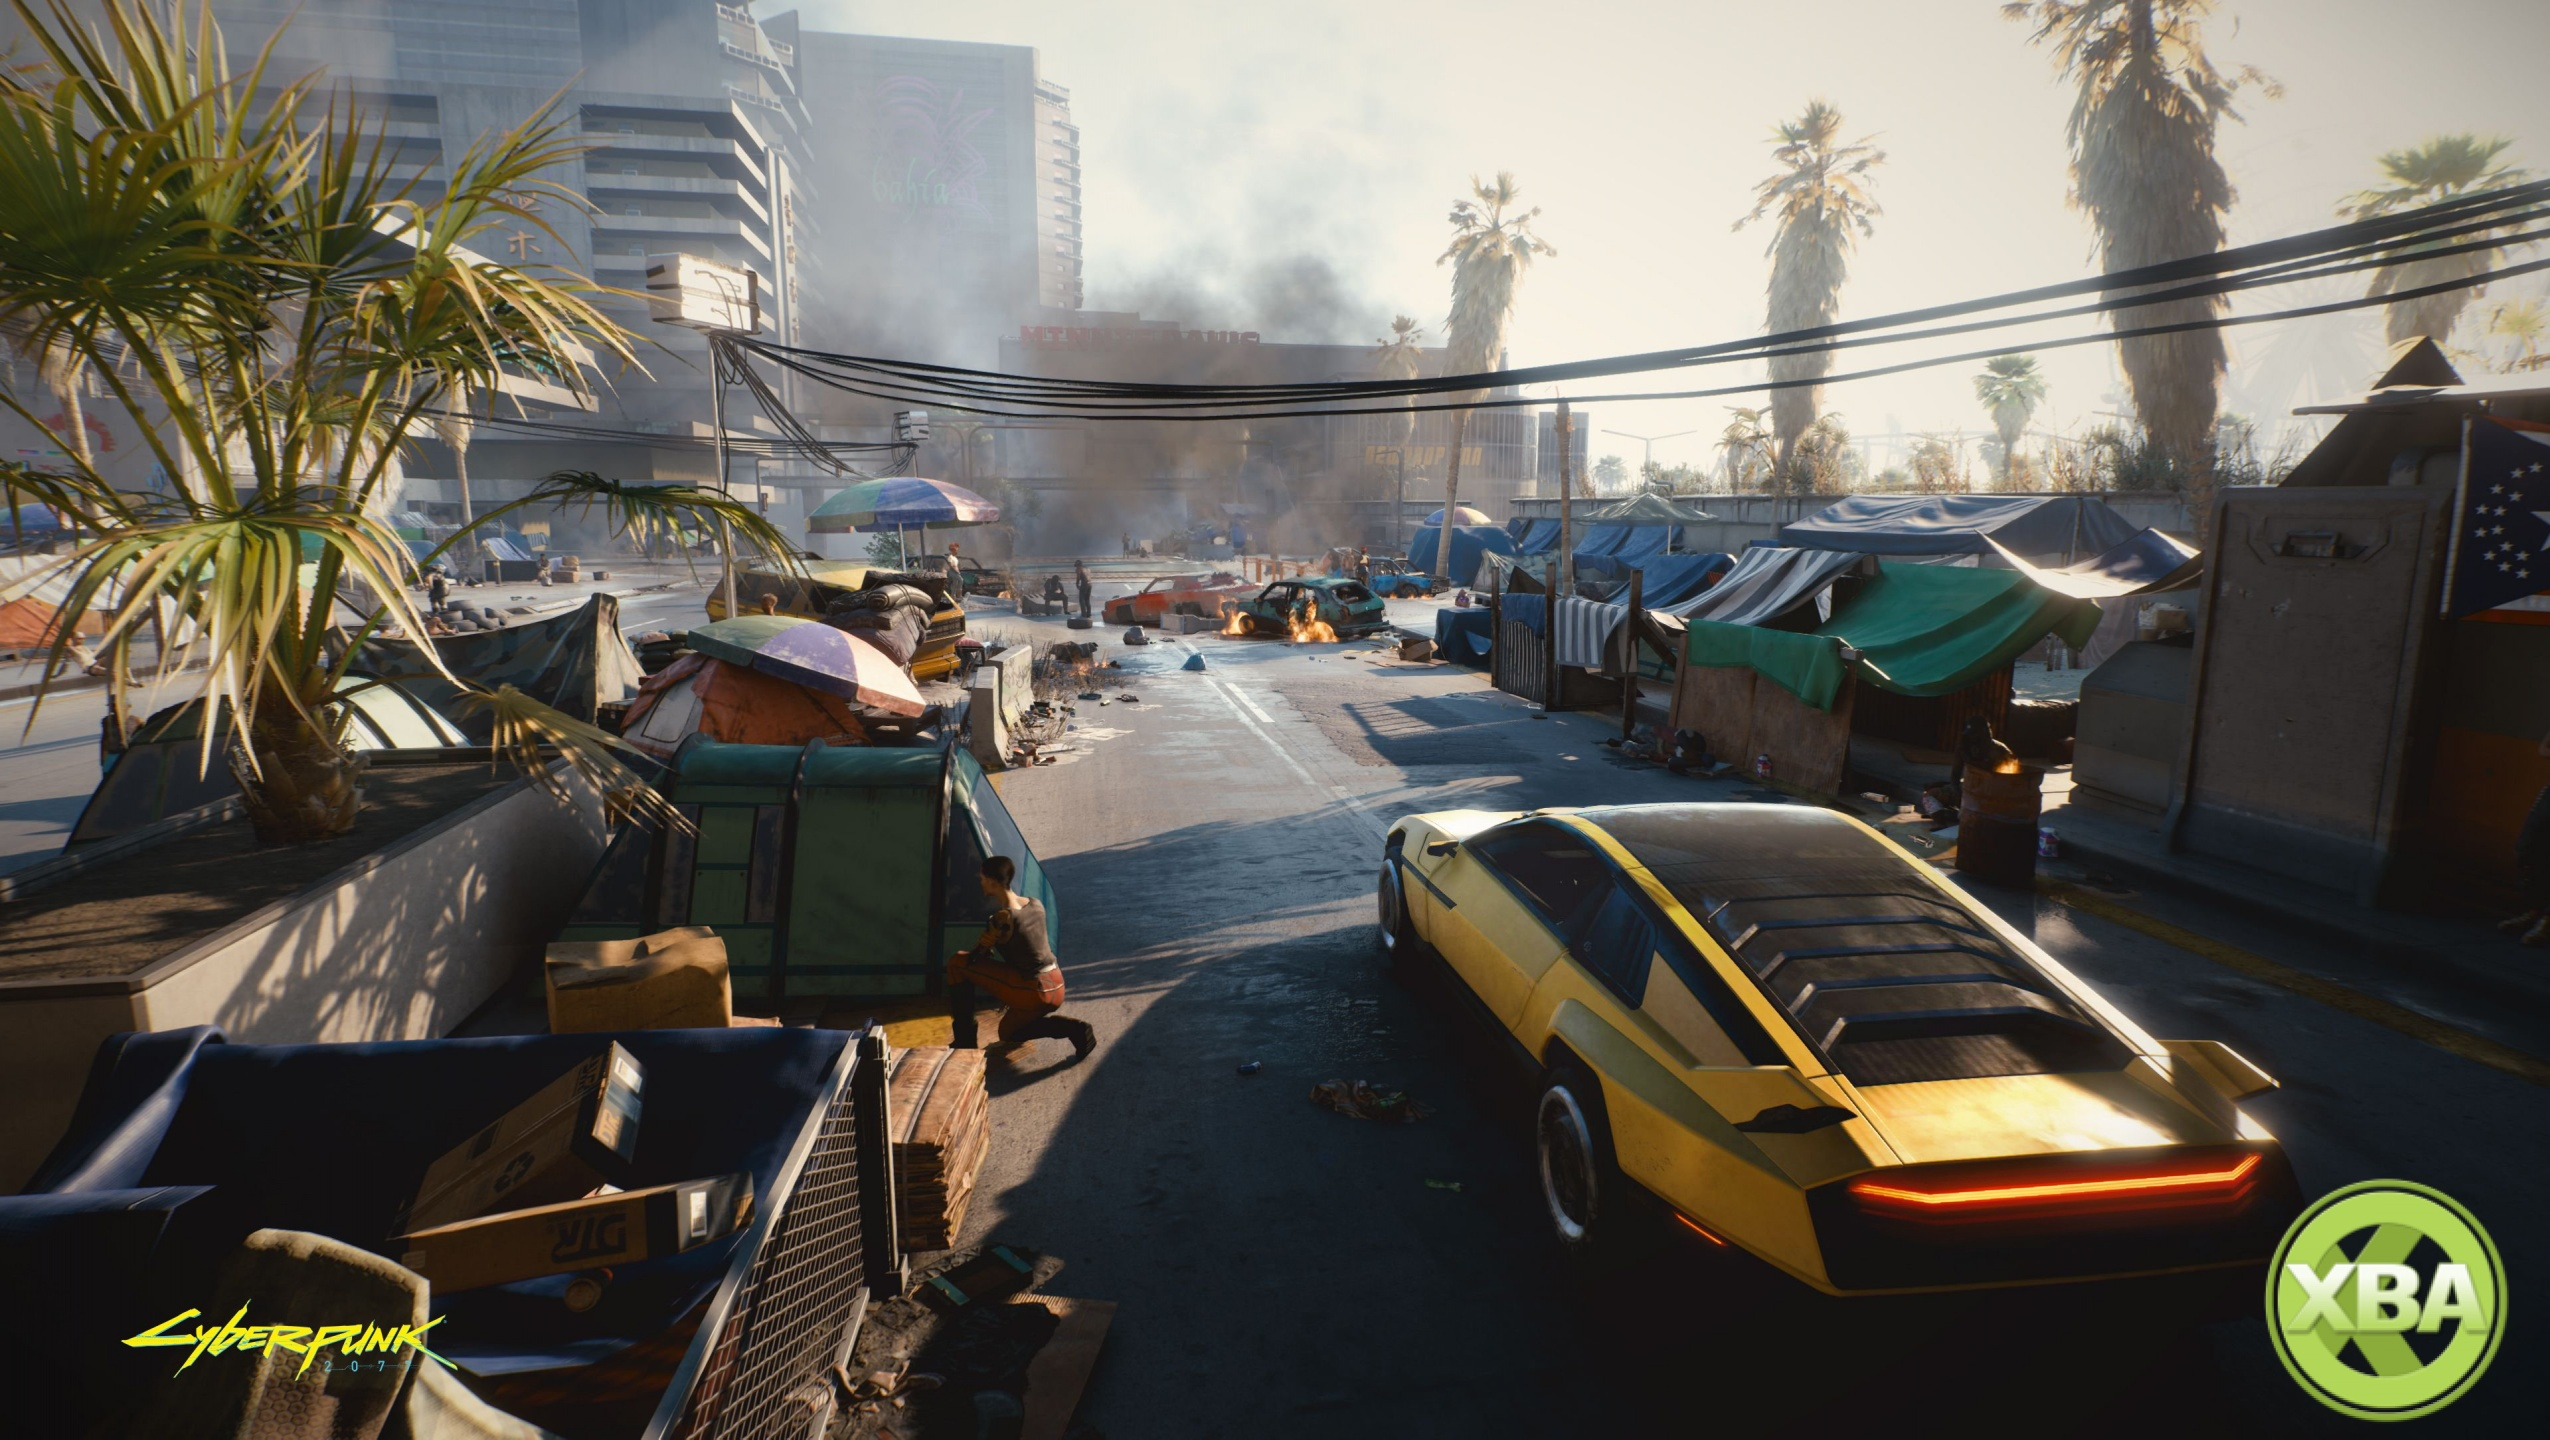 Drop everything and watch this livestream if you're a Cyberpunk 2077 fan